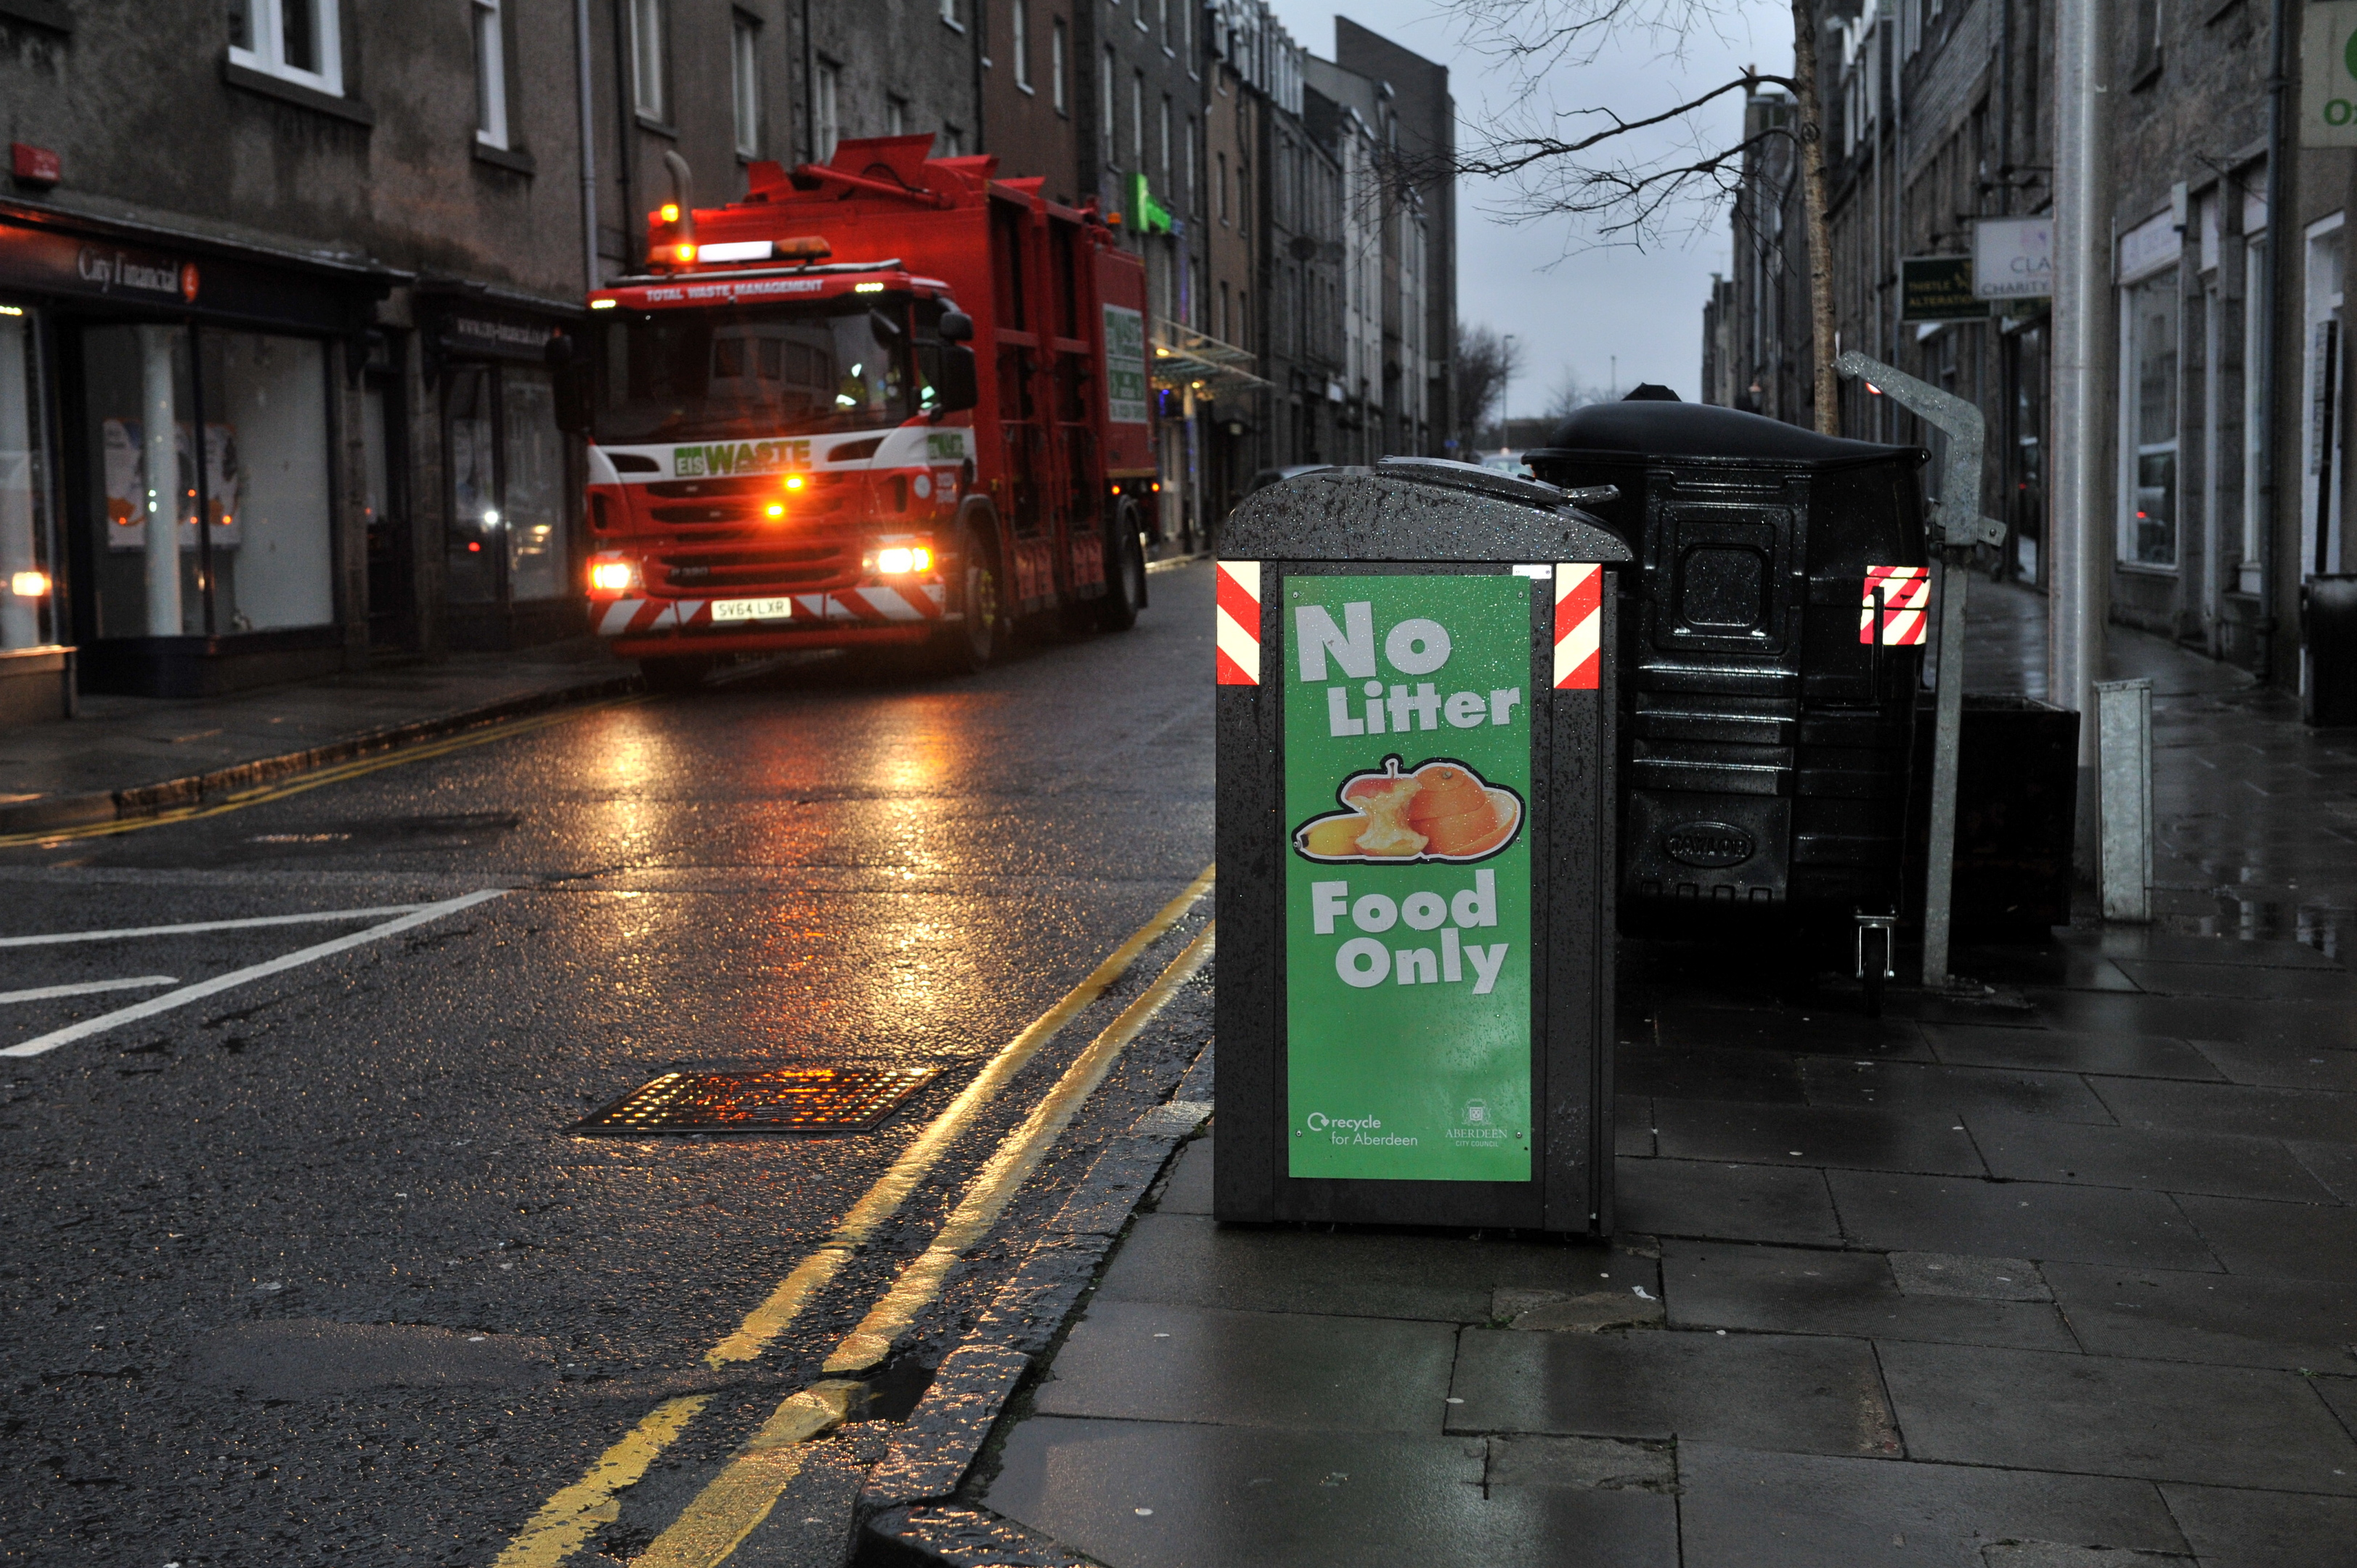 A scheme where locks were fitted to food waste bins to prevent litter contamination has been a success.